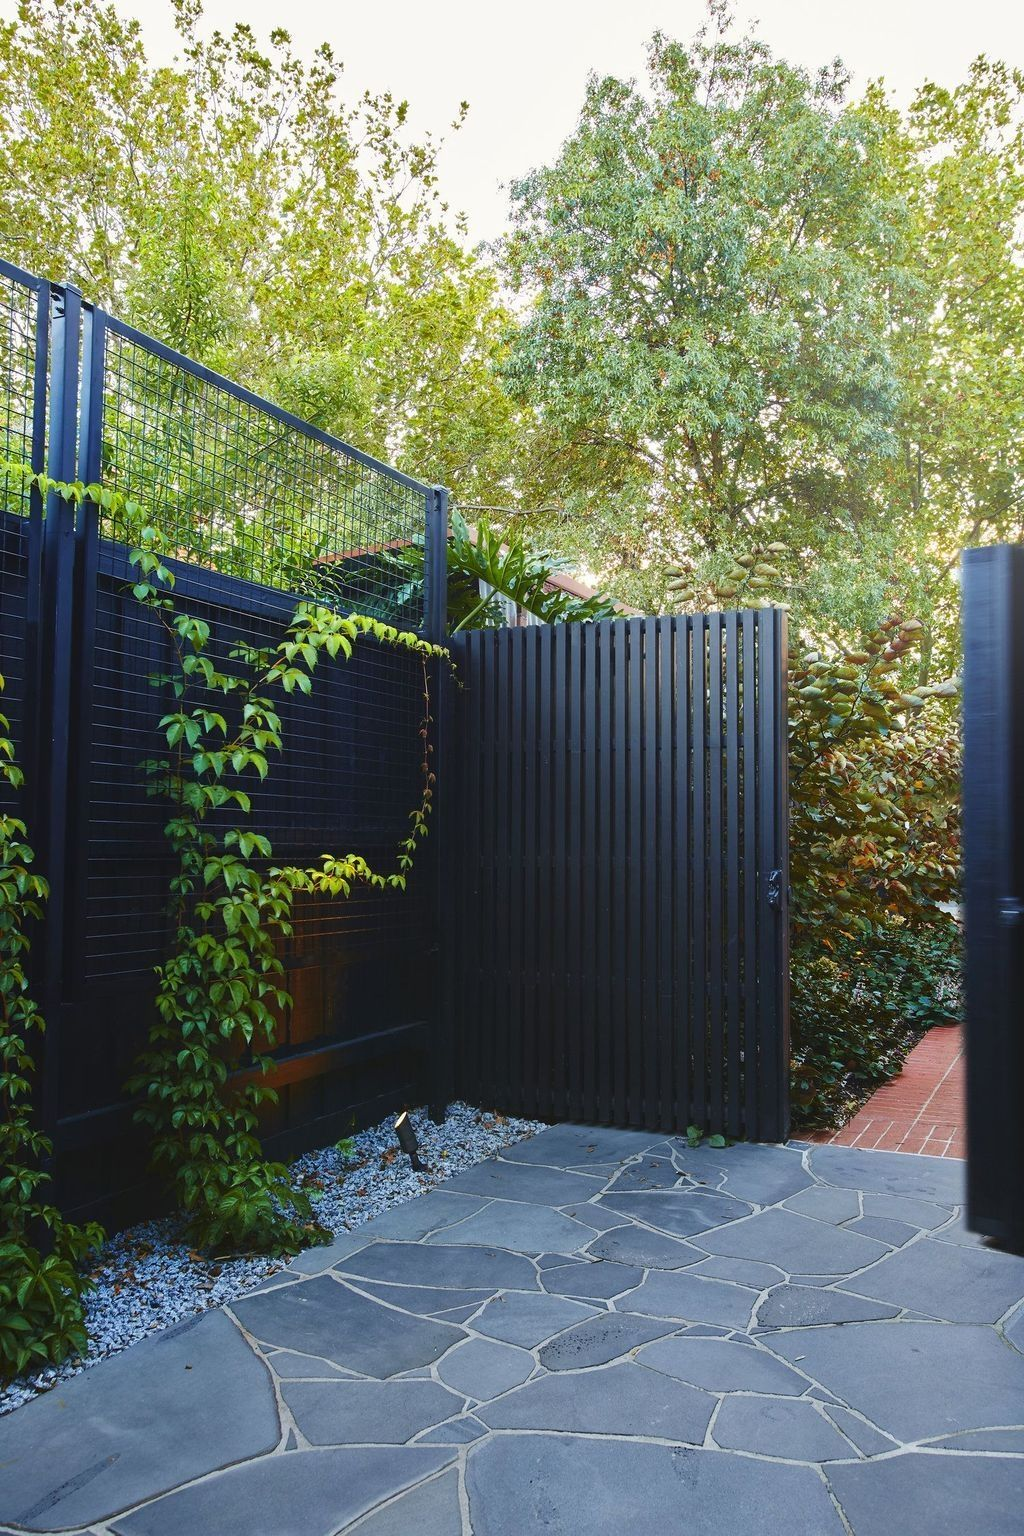 20 Inexpensive Black Fence Ideas For Garden Design In 2020 Modern Garden Design Black Fence Garden Design